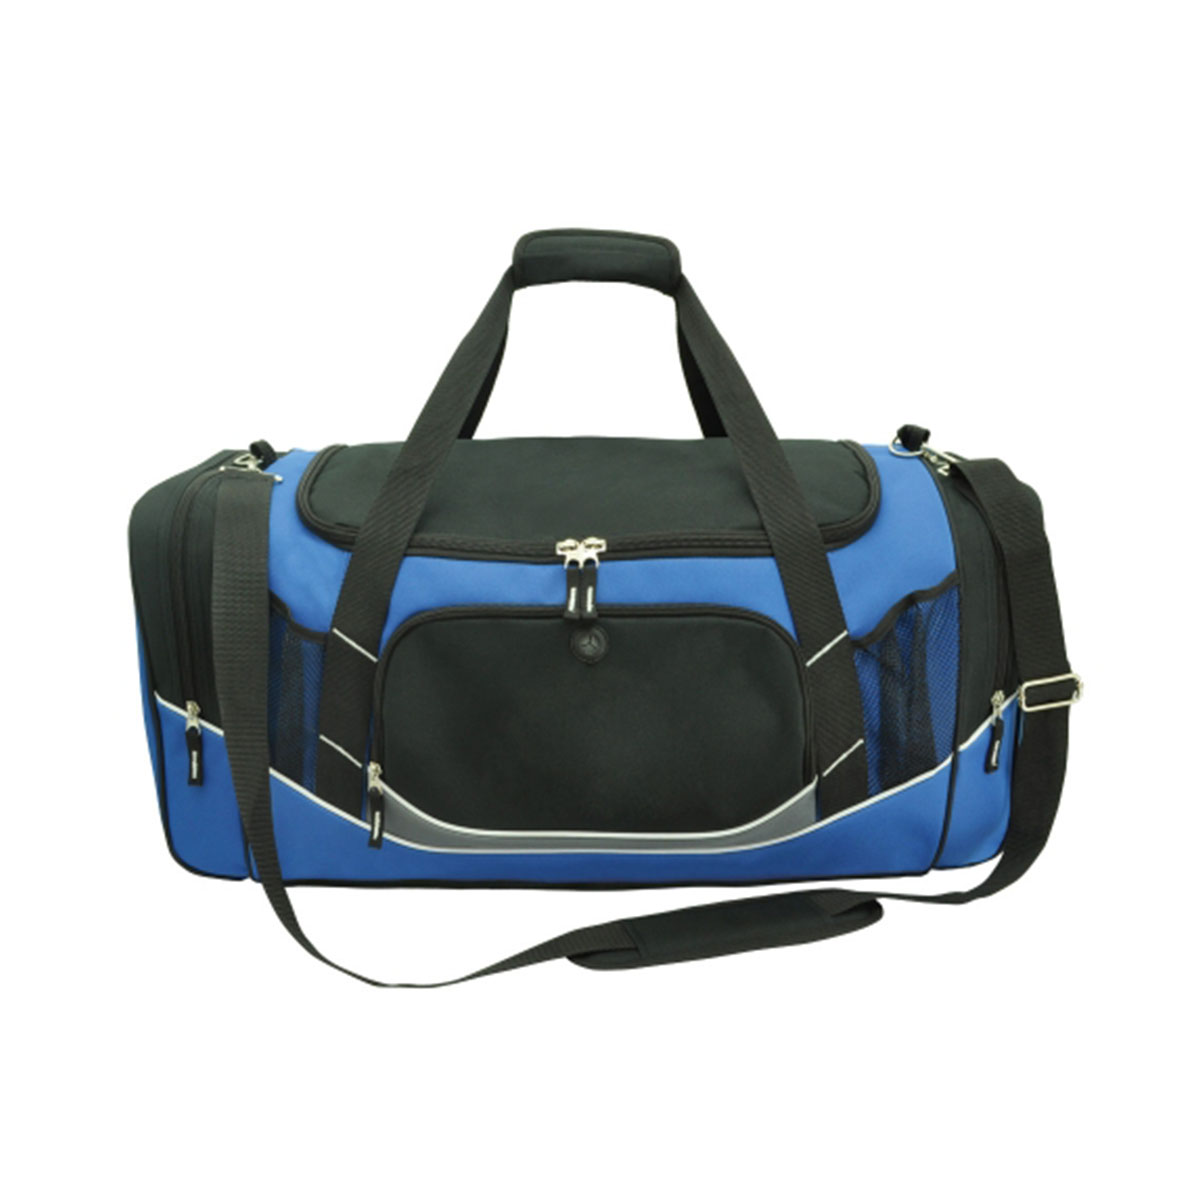 Atlantis Sports Bag-Black / Royal / White / Charcoal